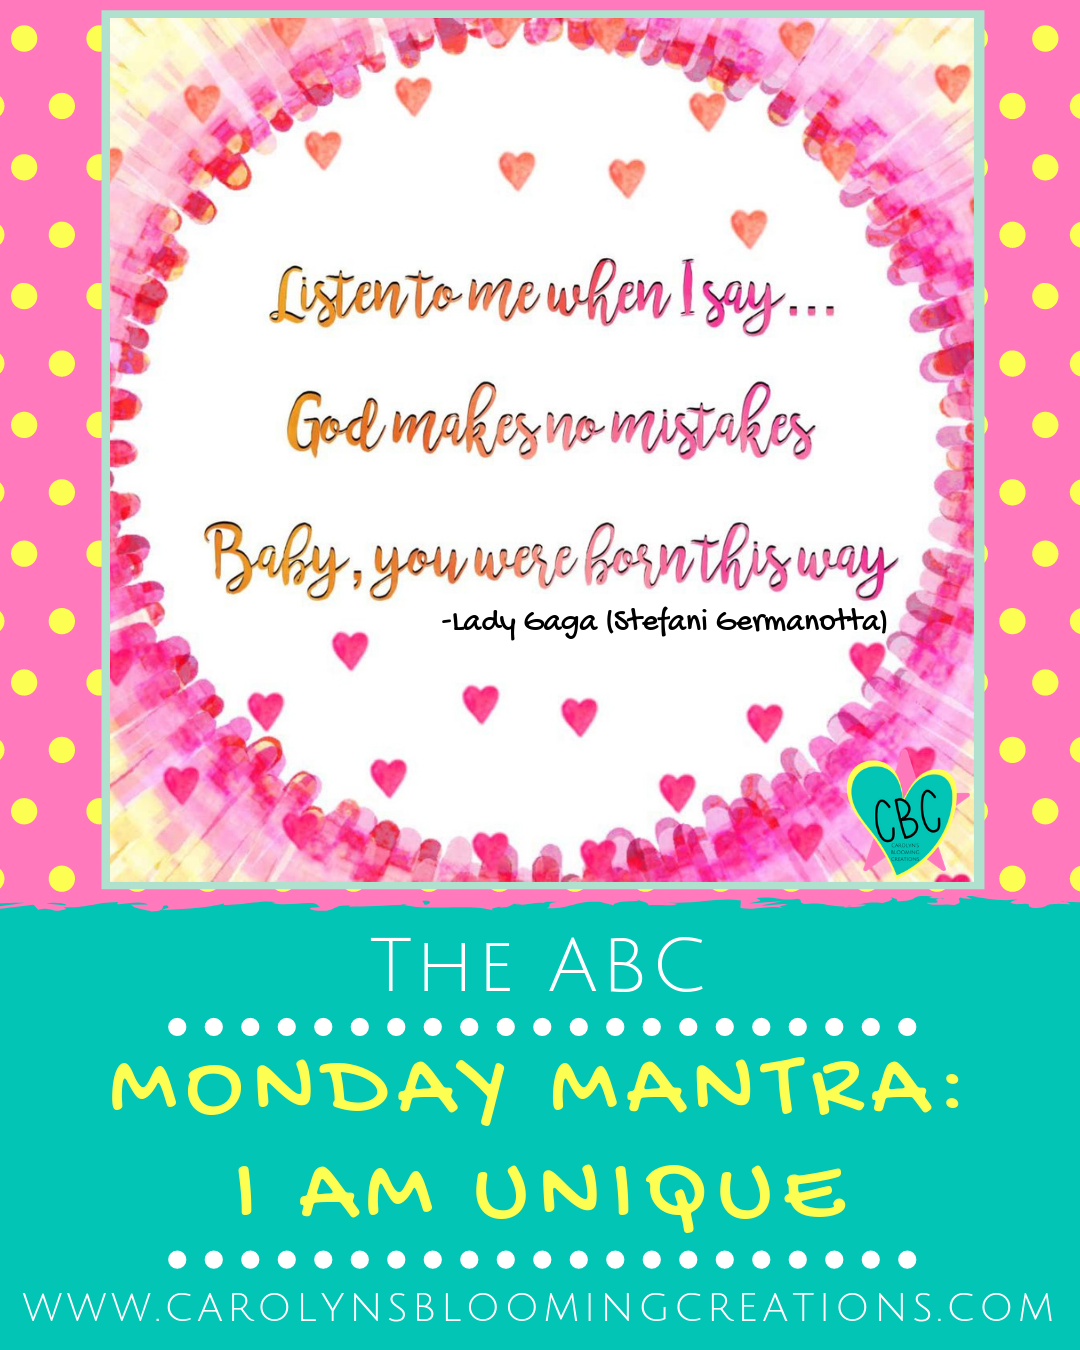 """Quote by Lady Gaga, Stefani Joanne Angelina Germanotta, from the song """"Born This Way""""  Pin me! www.carolynsbloomingcreations.com"""